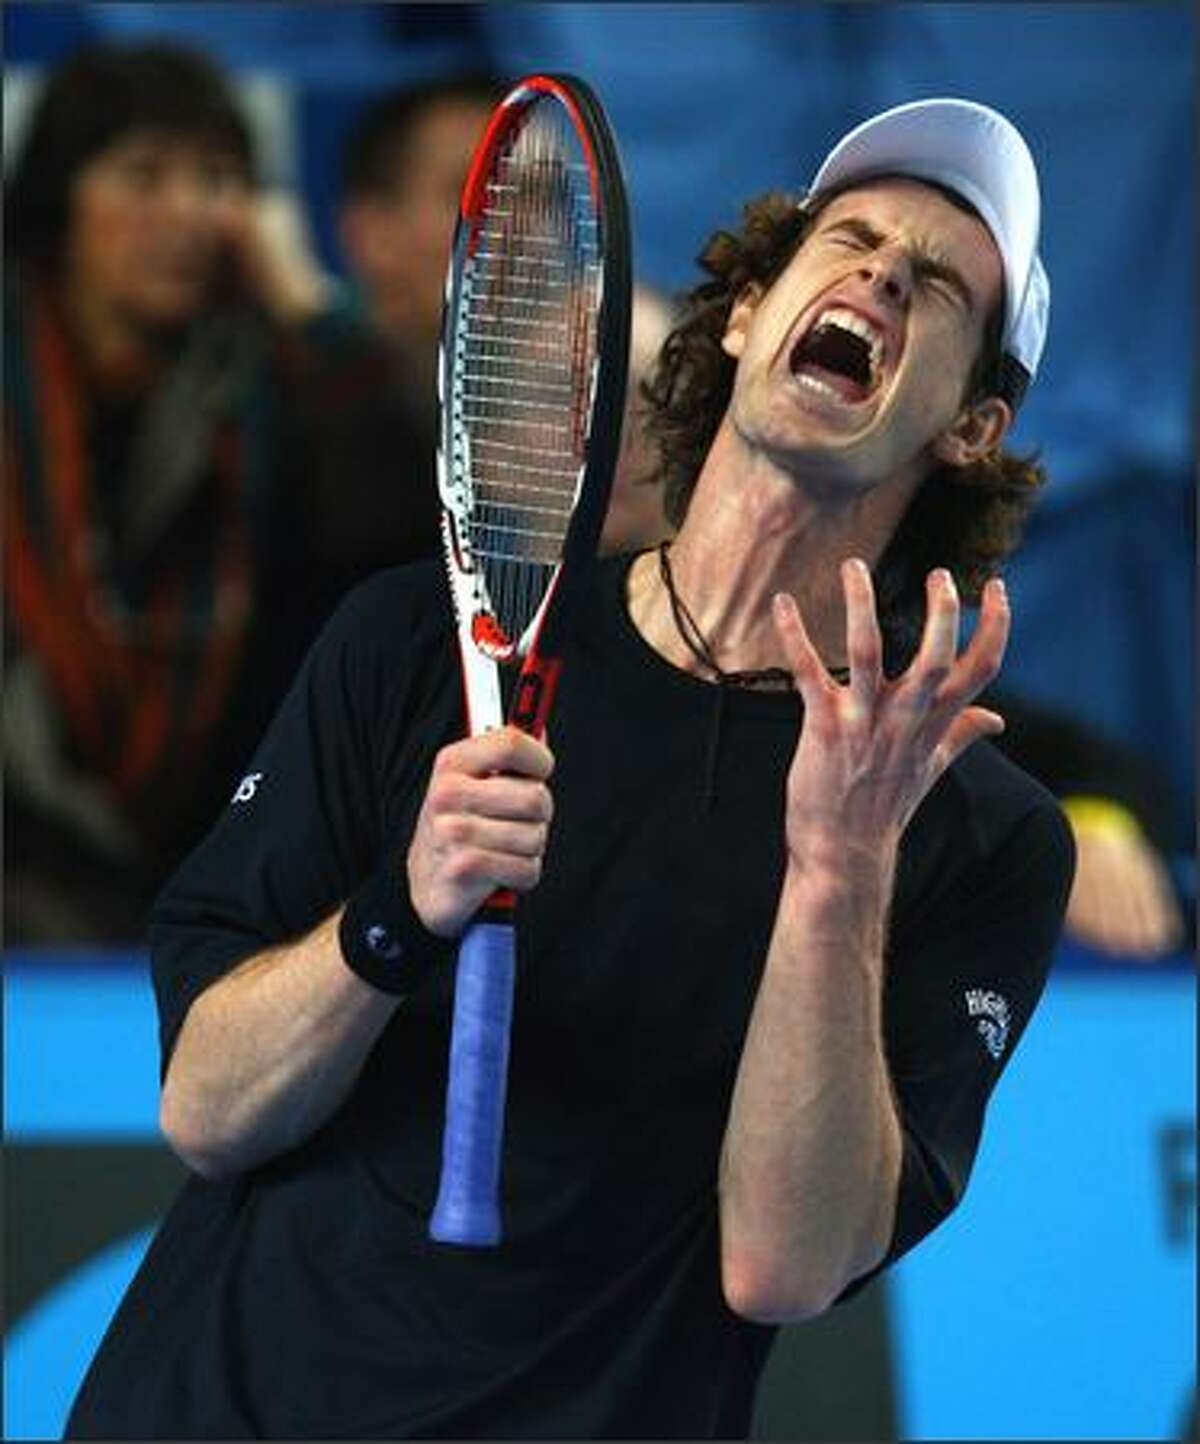 Andy Murray of Great Britain shows his frustrations during his 3-6,7-6,6-1 victory against Stanislas Wawrinka of Switzerland the 2008 Open 13 Marseille tournament at the Palais des Sports on February 14, 2008 in Marseille, France.3 (Photo by Michael Steele/Getty Images)